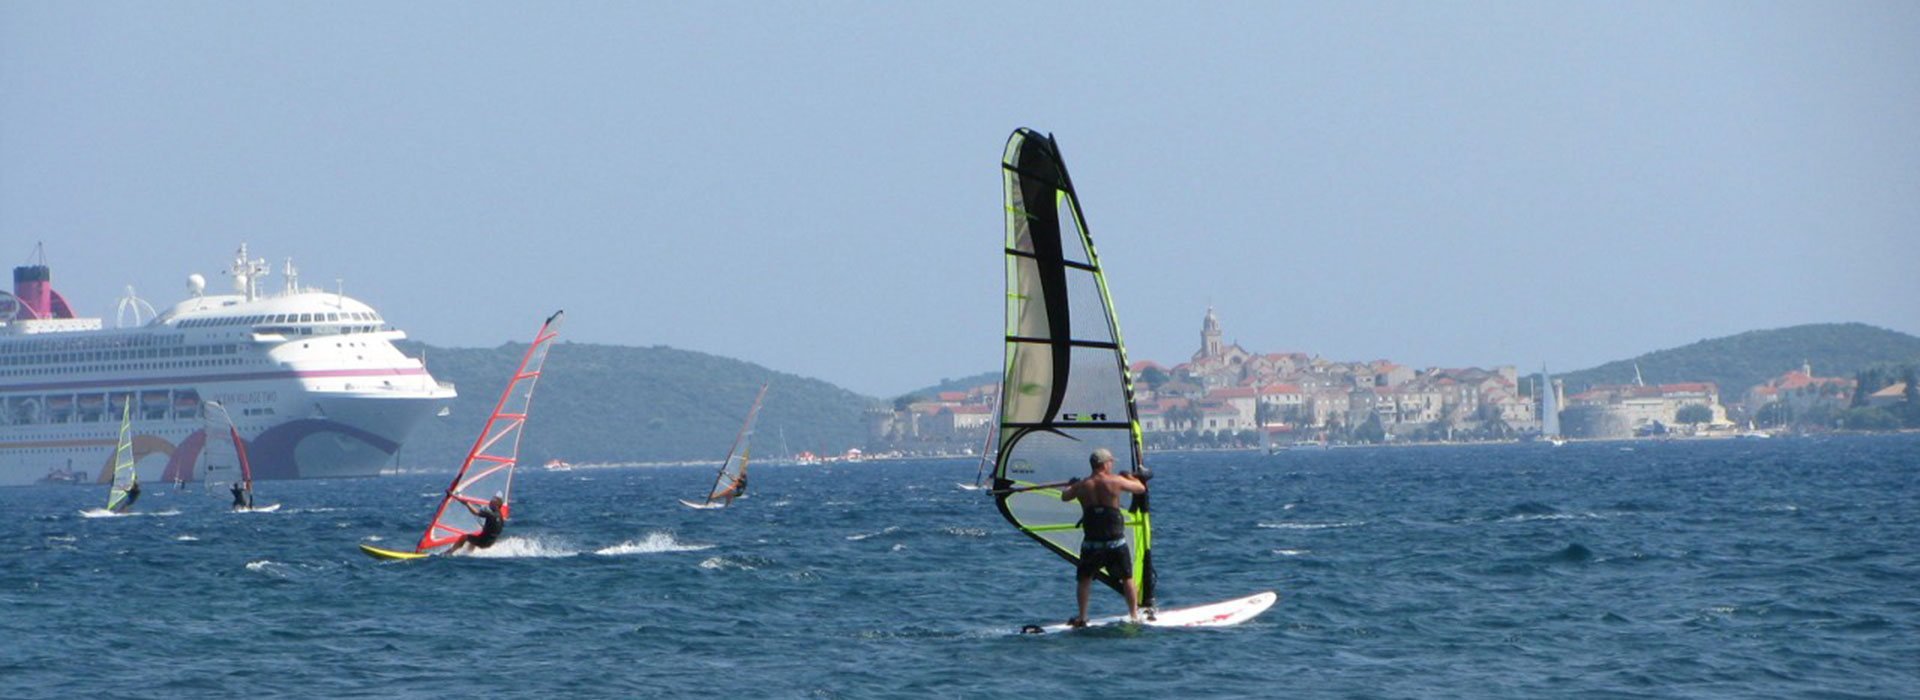 Windsurfing in Croatia